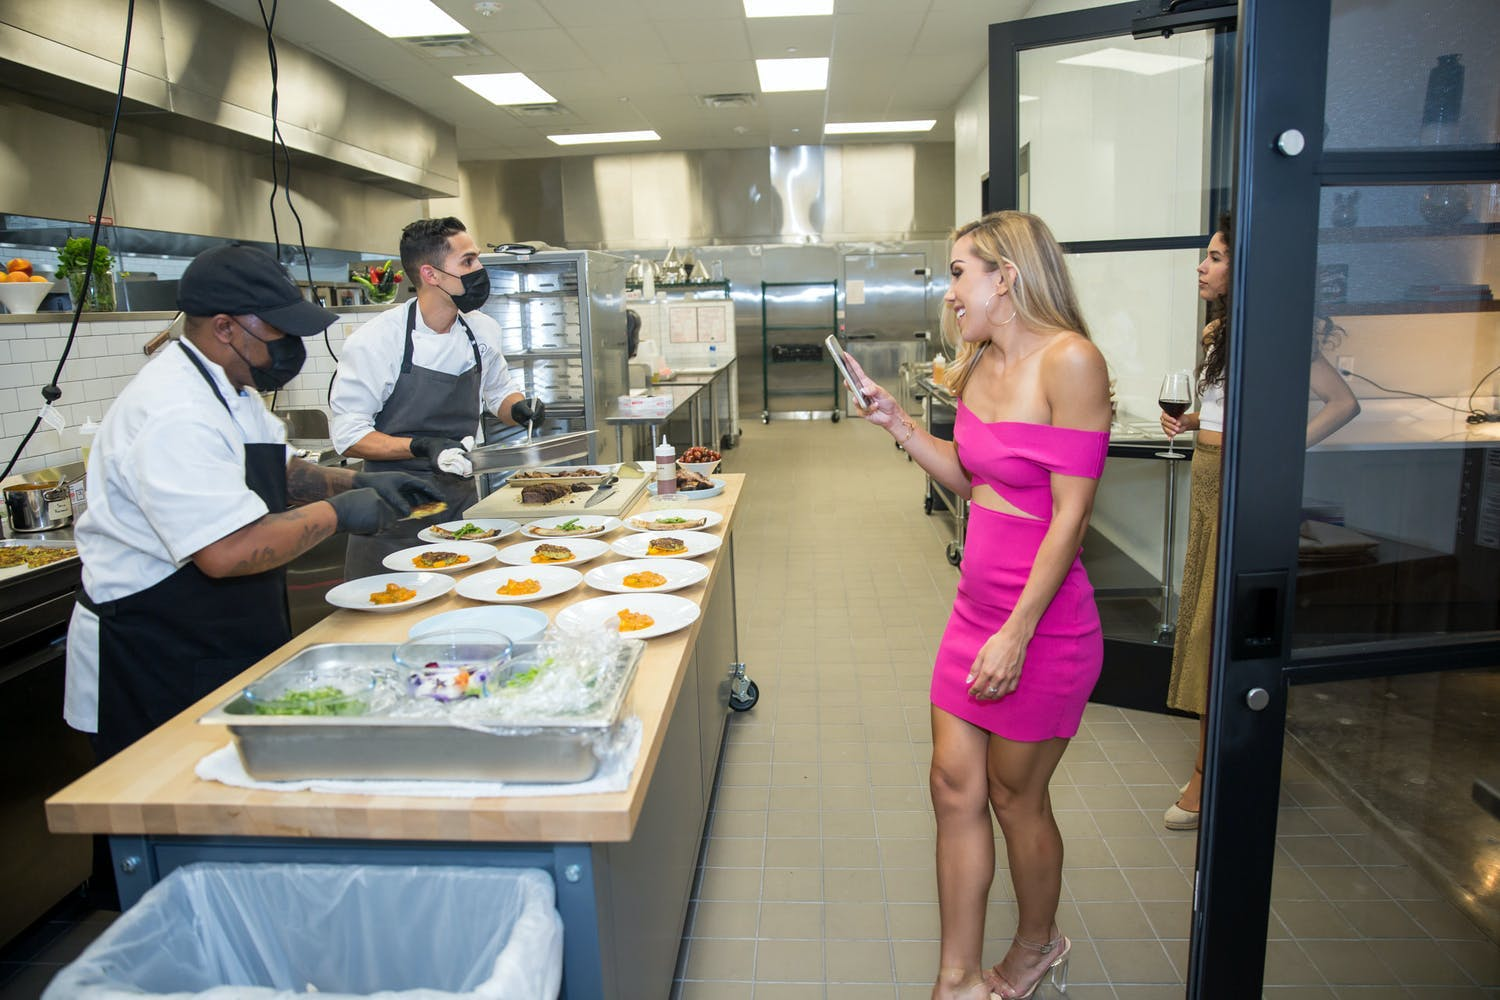 Woman in Pink Dress Takes a Photo on her Phone of Chef's Preparing Meal in Kitchen | PartySlate